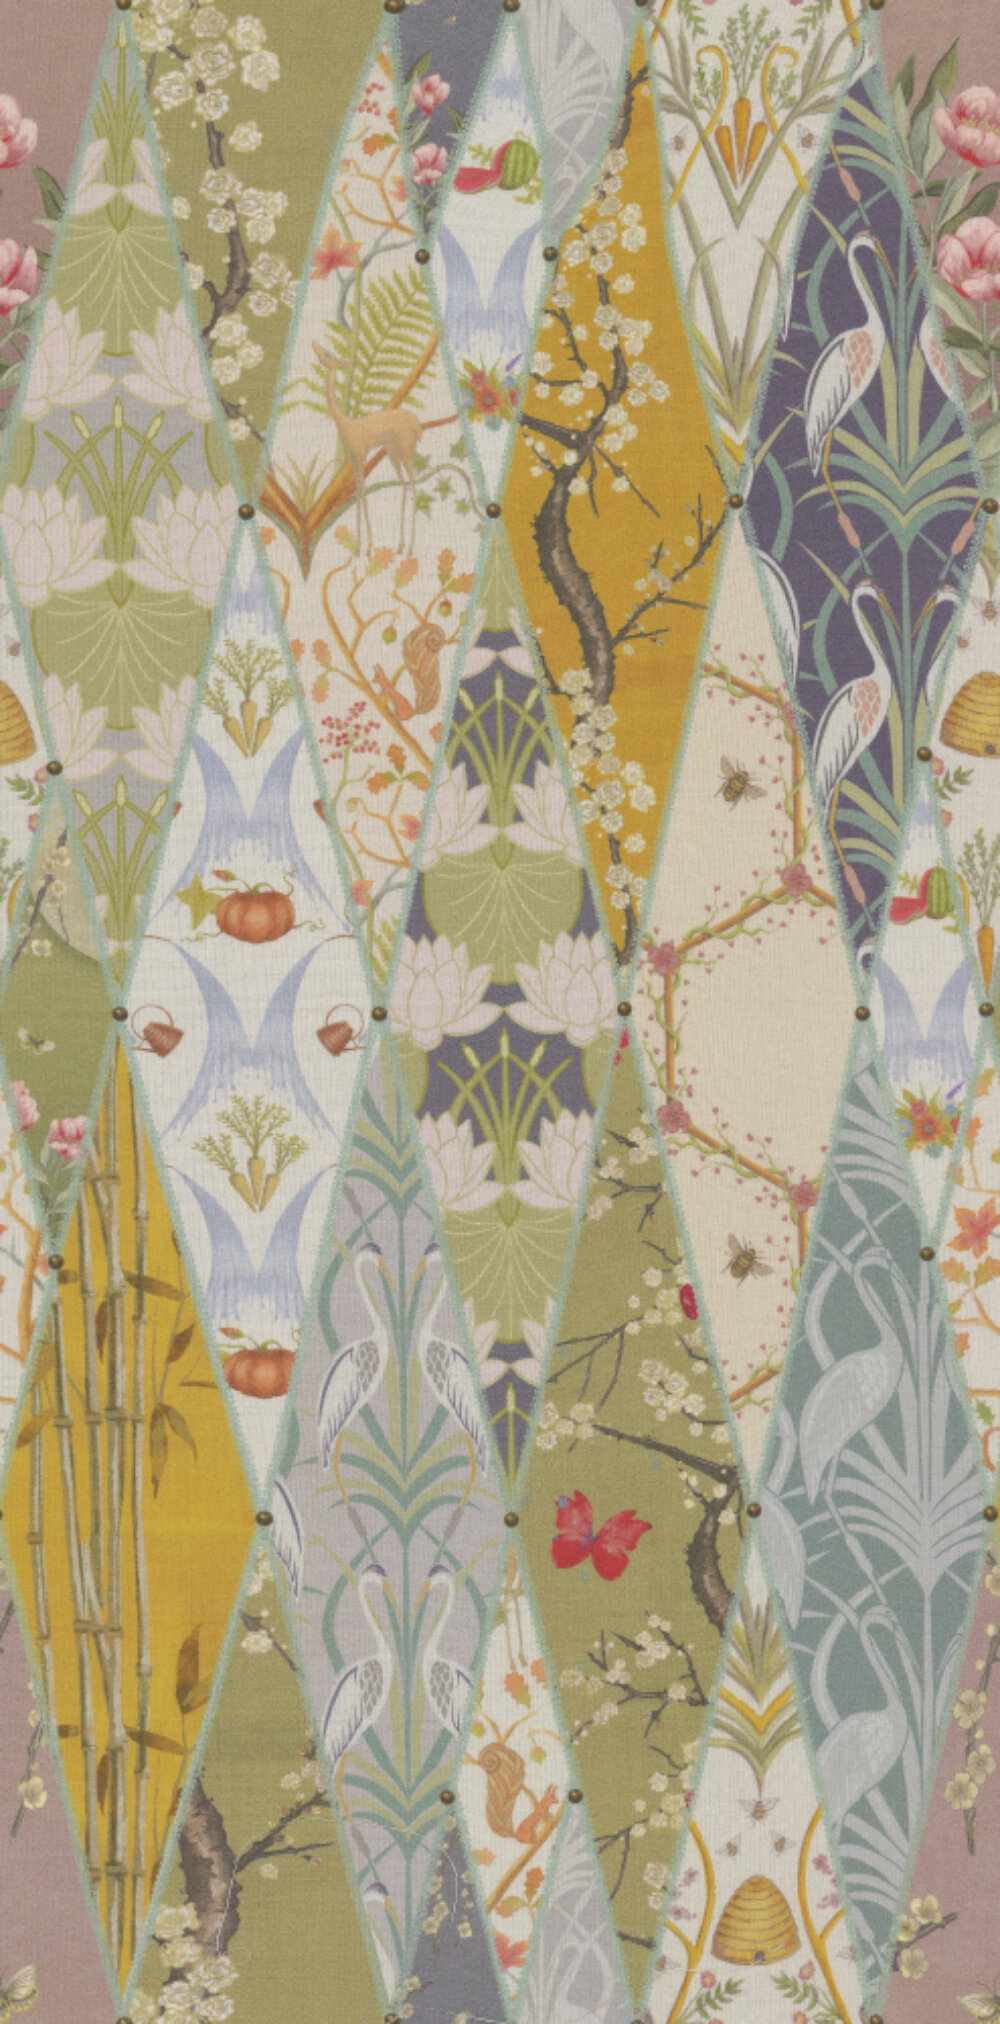 Nouveau Wallpaper Fabric - Multi - by The Chateau by Angel Strawbridge